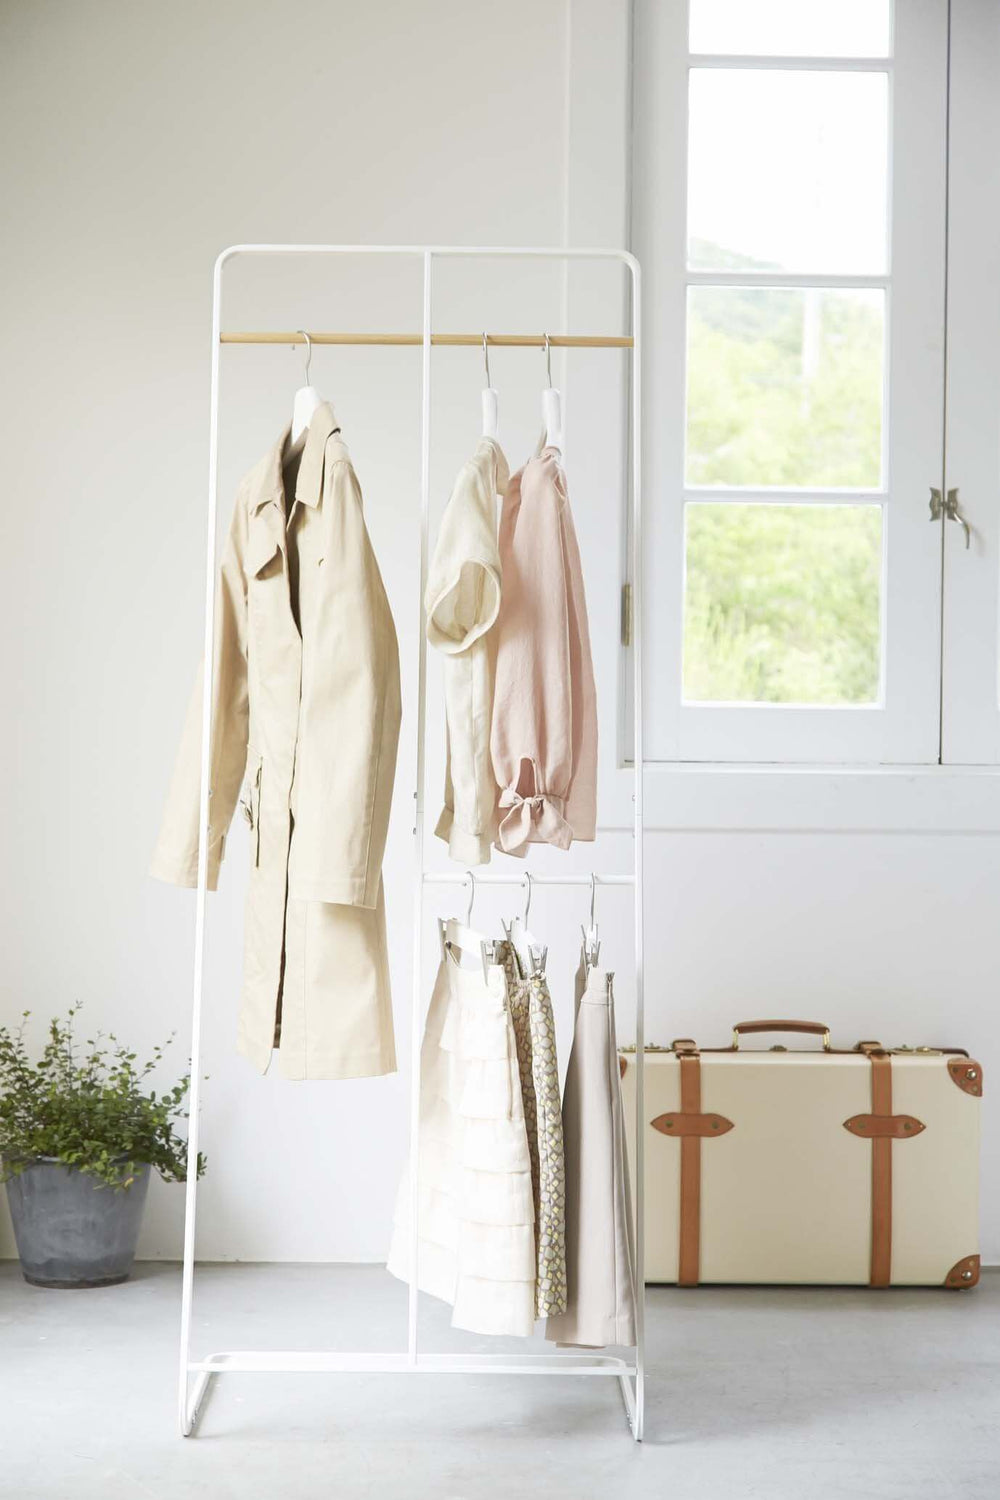 White 2-level coat rack by Yamazaki hung with clothes in room.